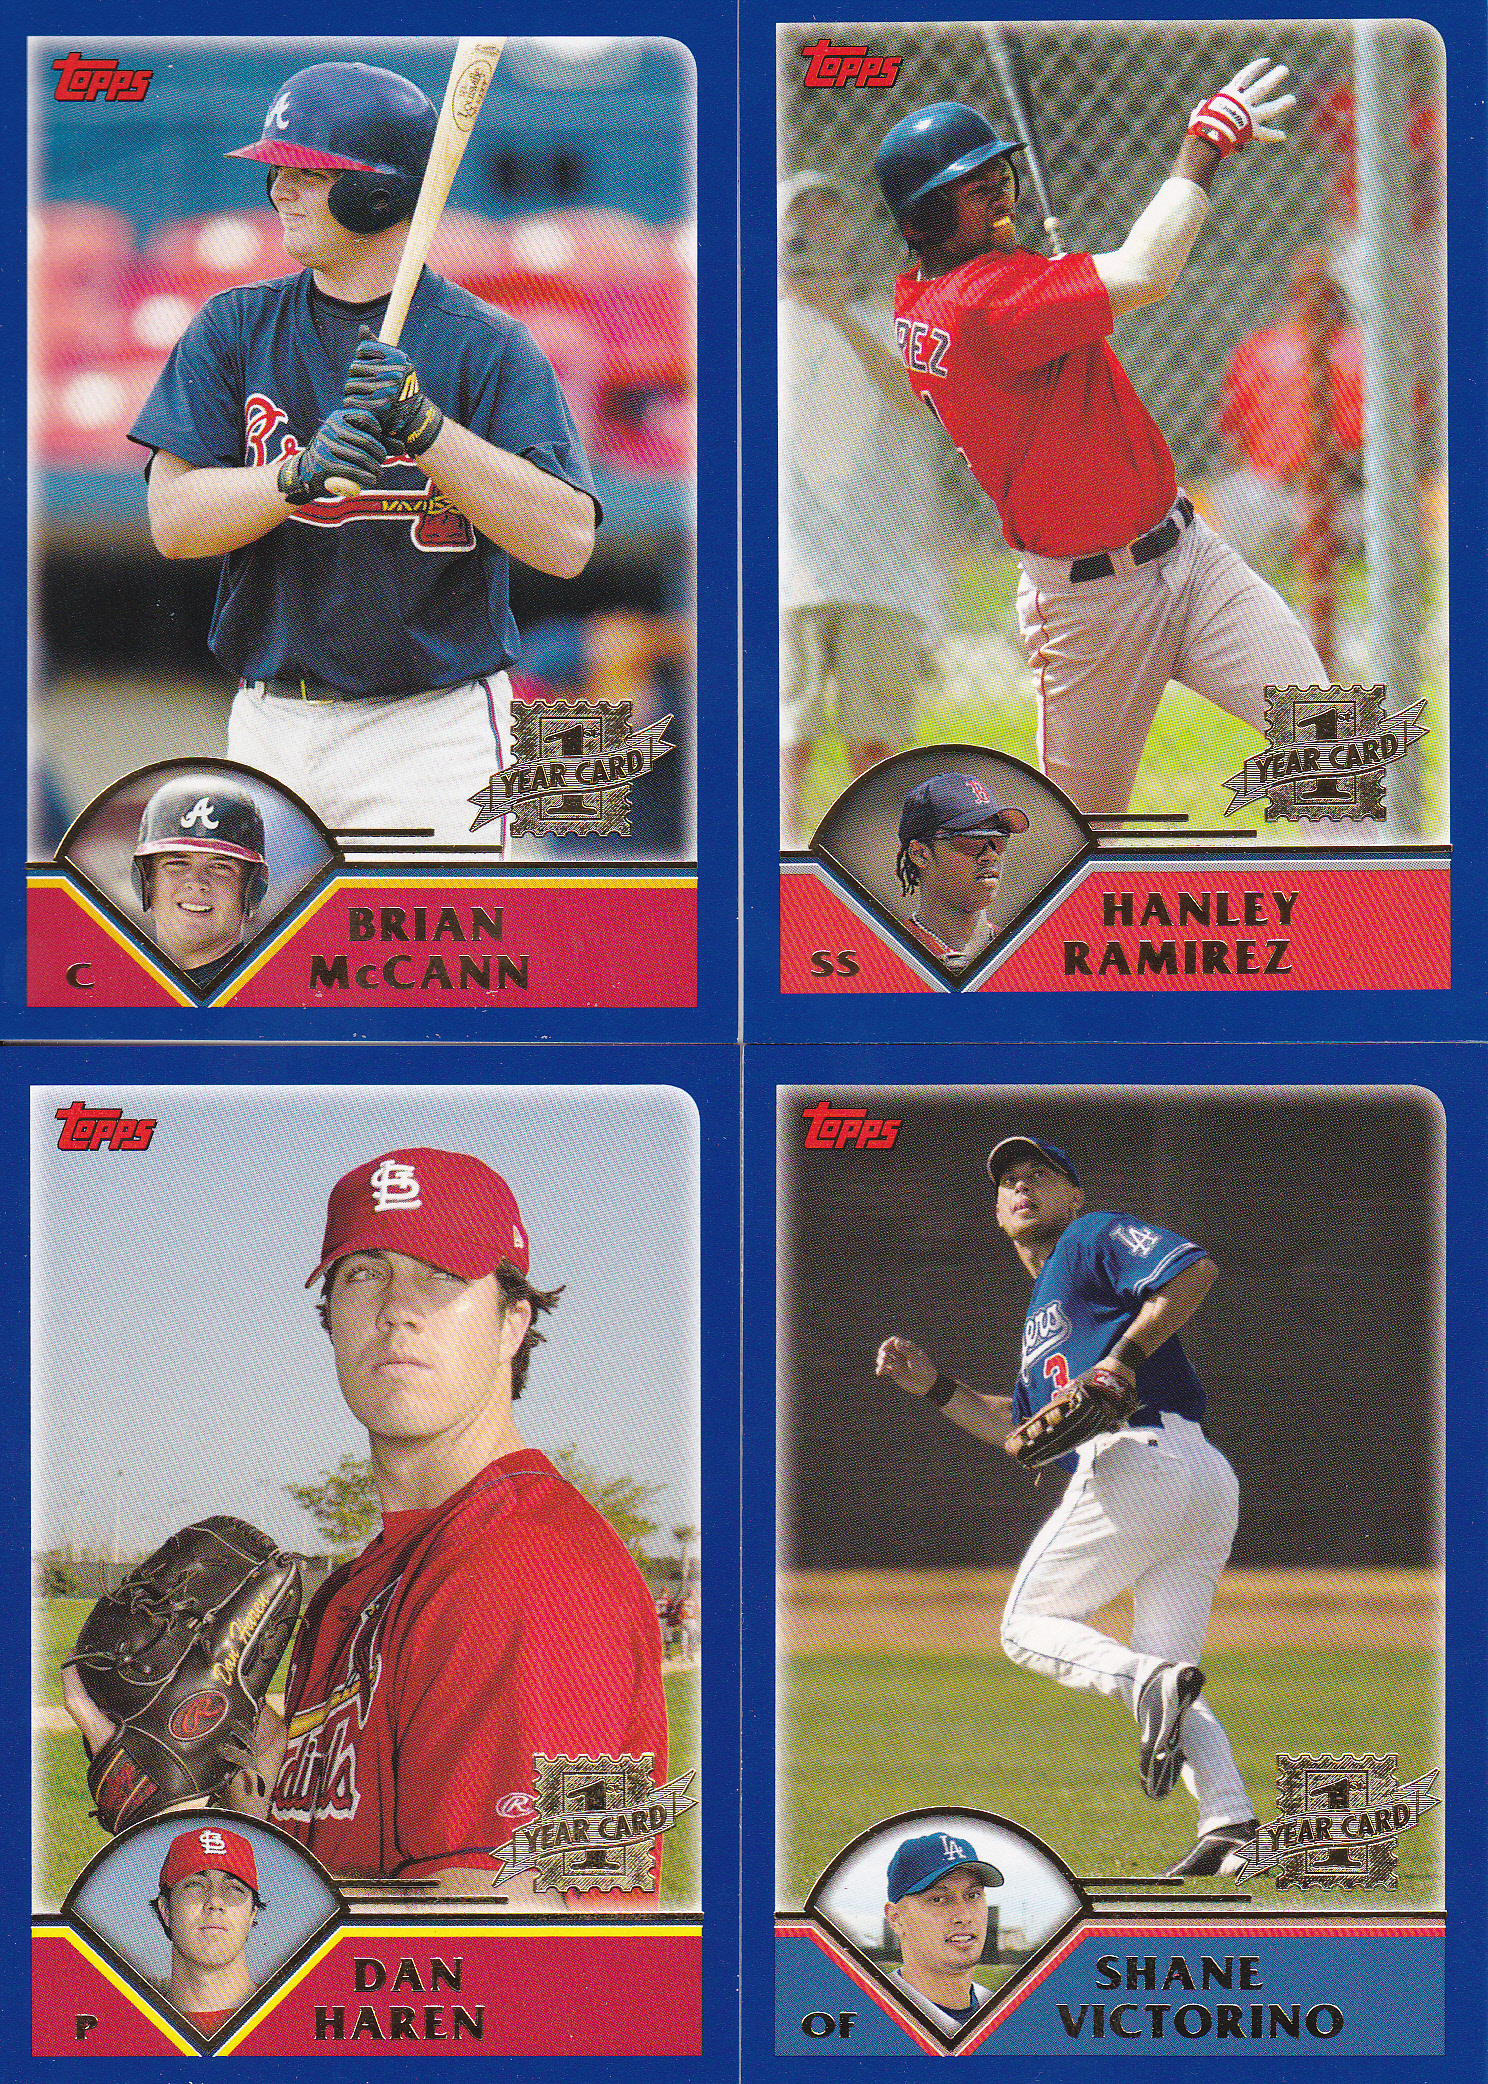 2003 Topps Traded Rookies Scans Lifetime Topps Project